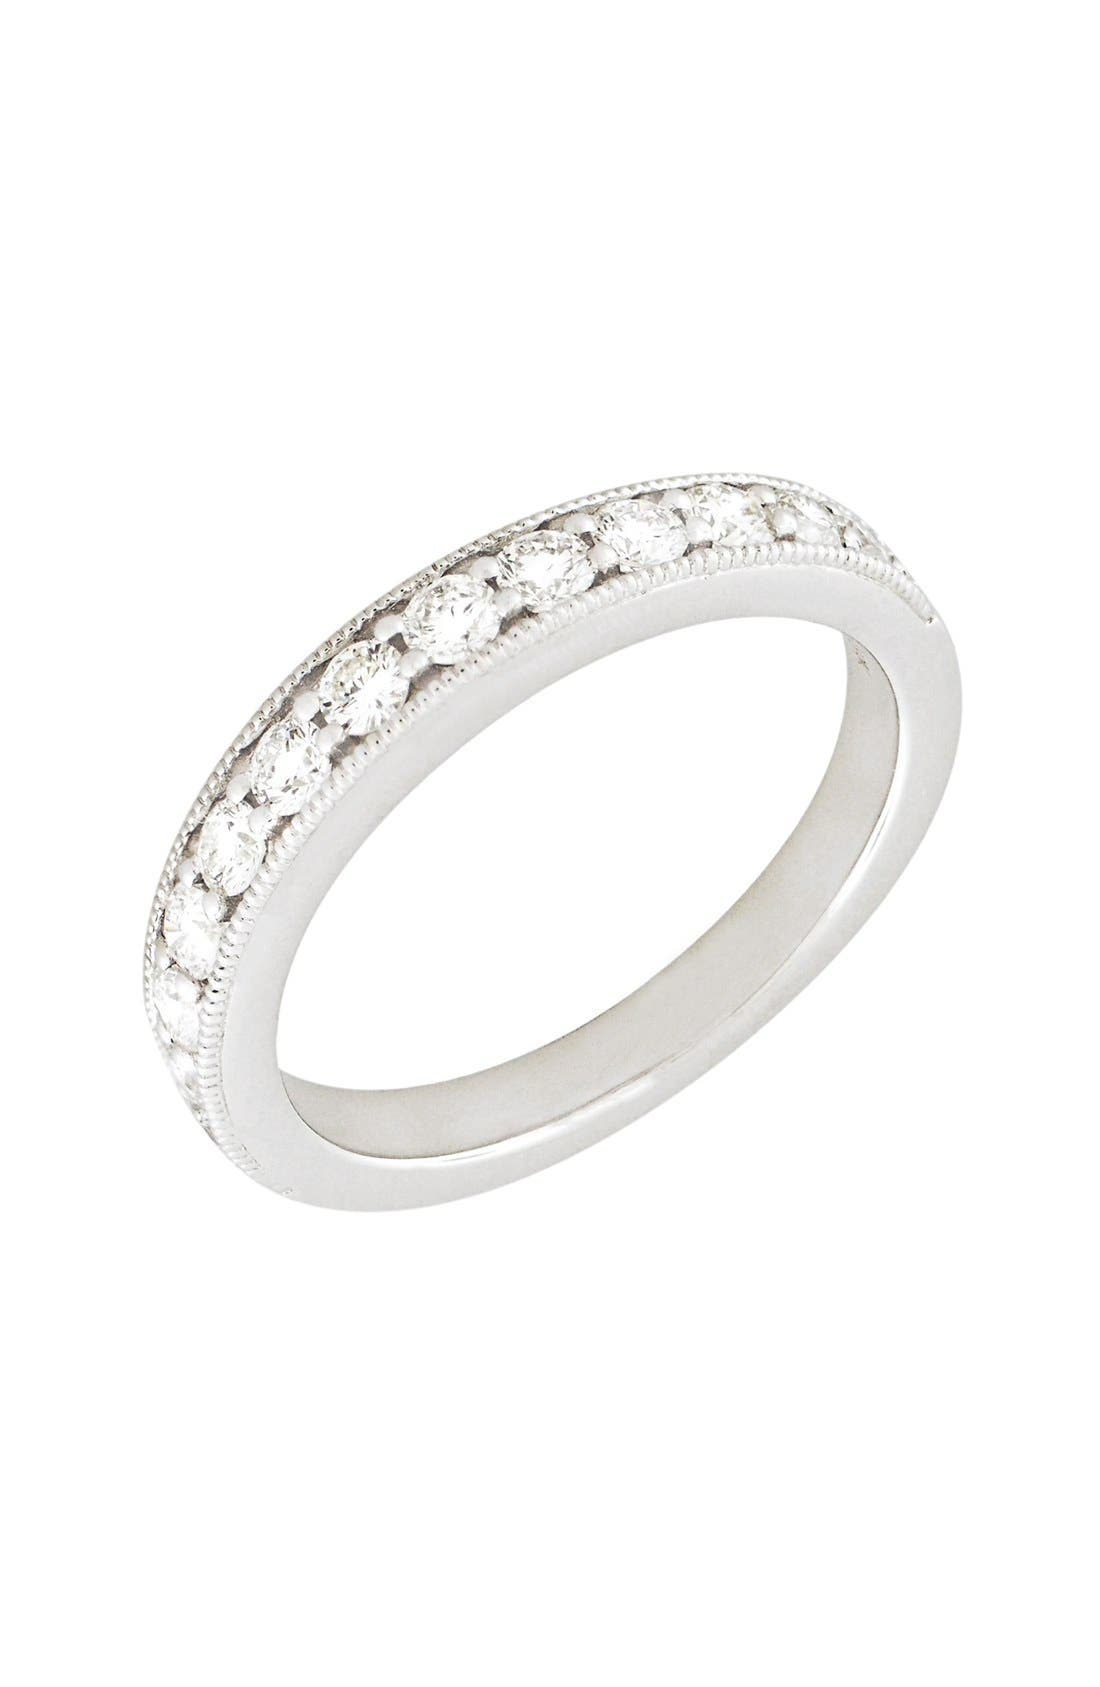 Stackable Diamond Band Ring,                         Main,                         color, White Gold